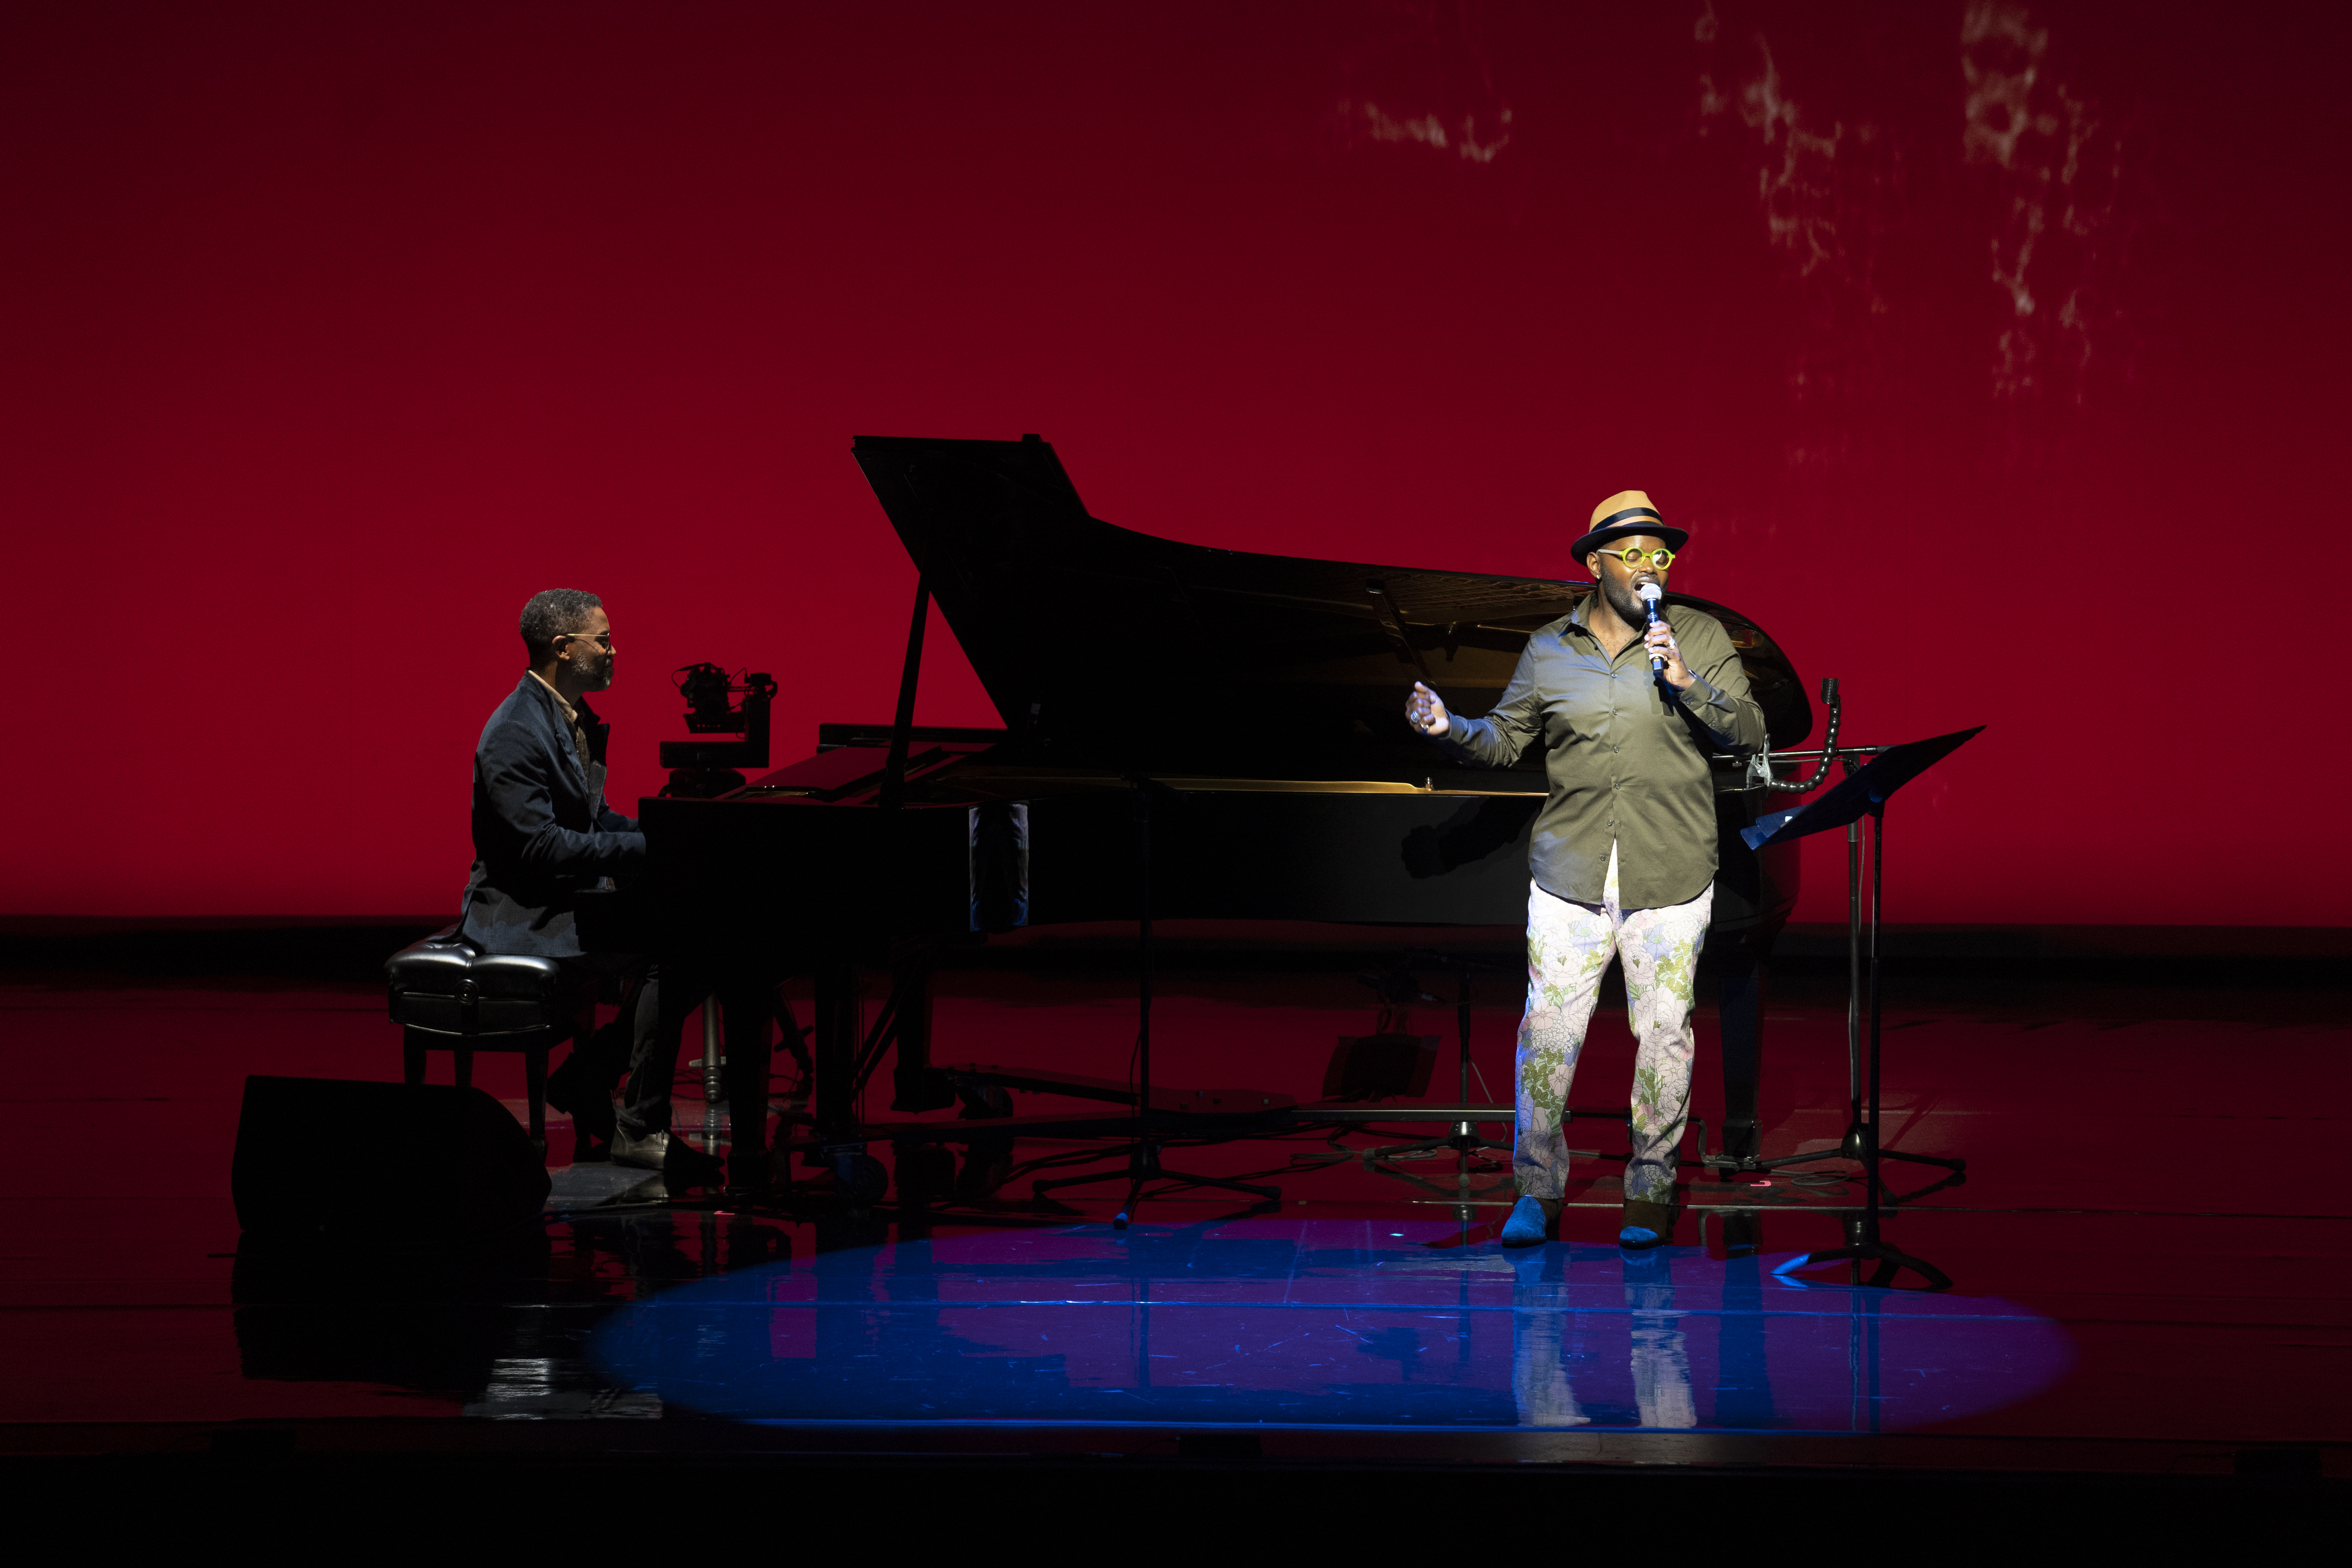 Dallas Priceswaterhousecooper 2021 Christmas The Dallas Opera Jumps Back Into In Person Performances With Singer John Holiday